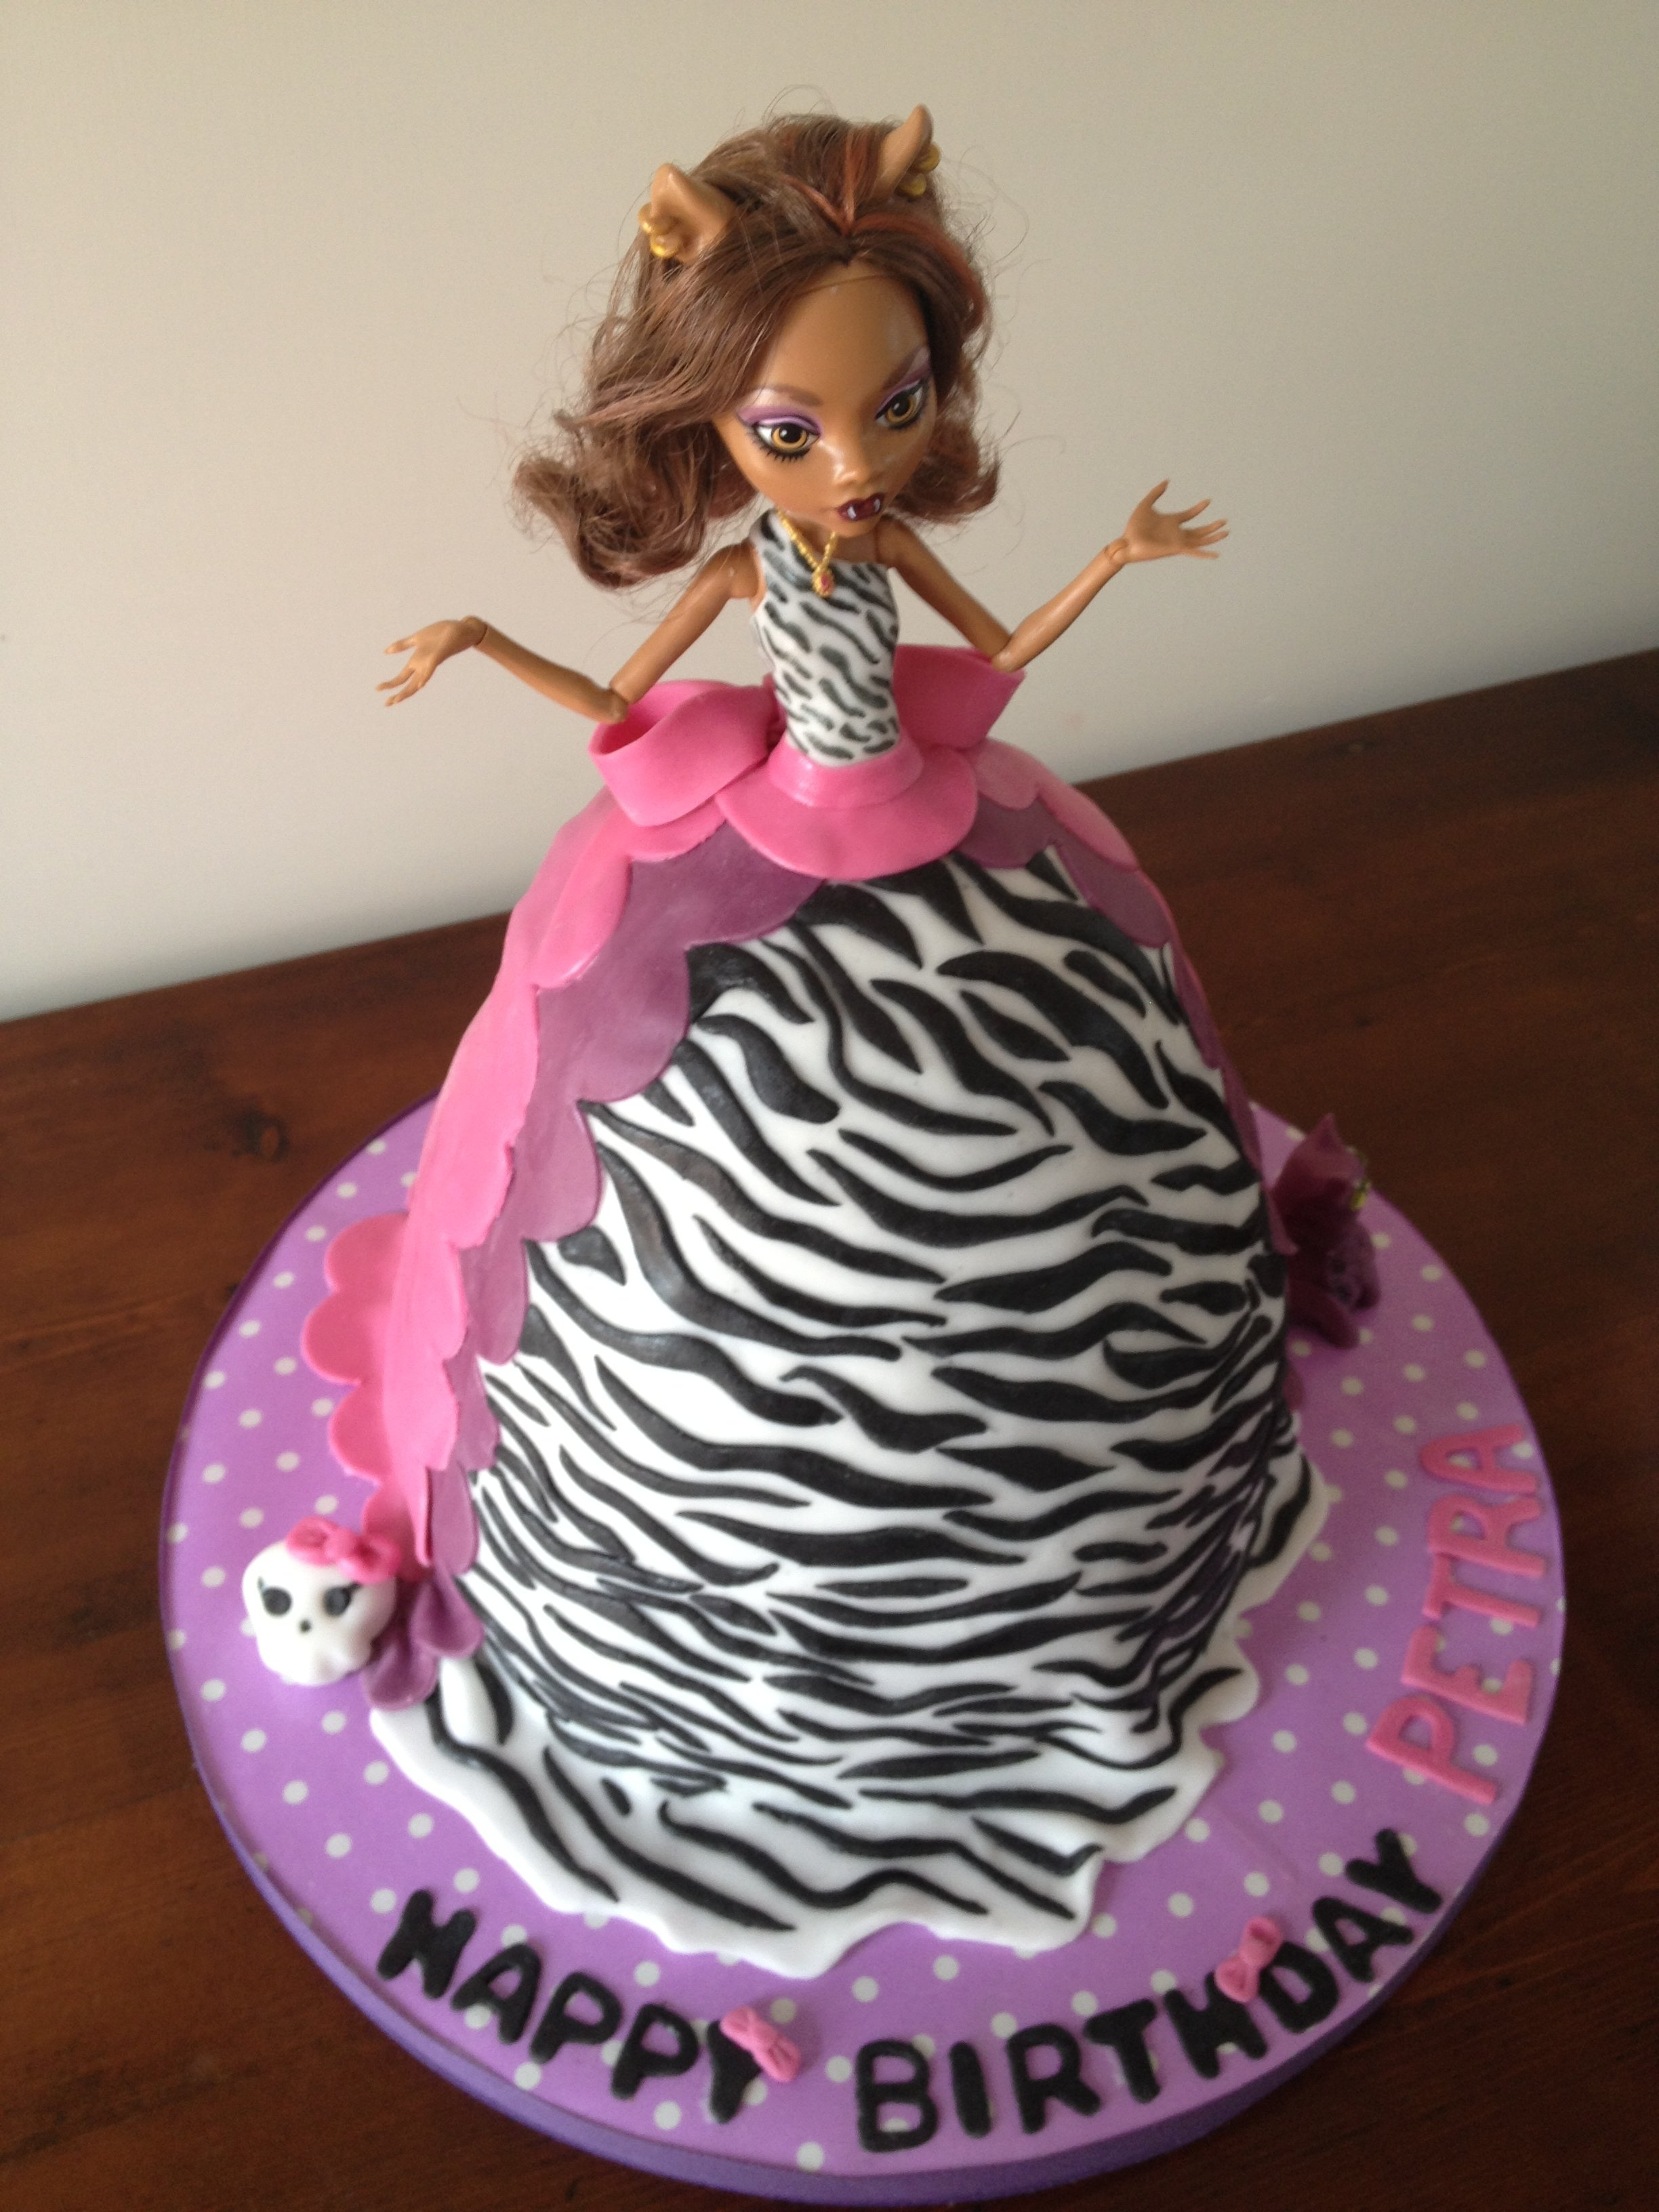 10 Lovable Monster High Birthday Cake Ideas monster high cakes decoration ideas little birthday cakes 2 2020